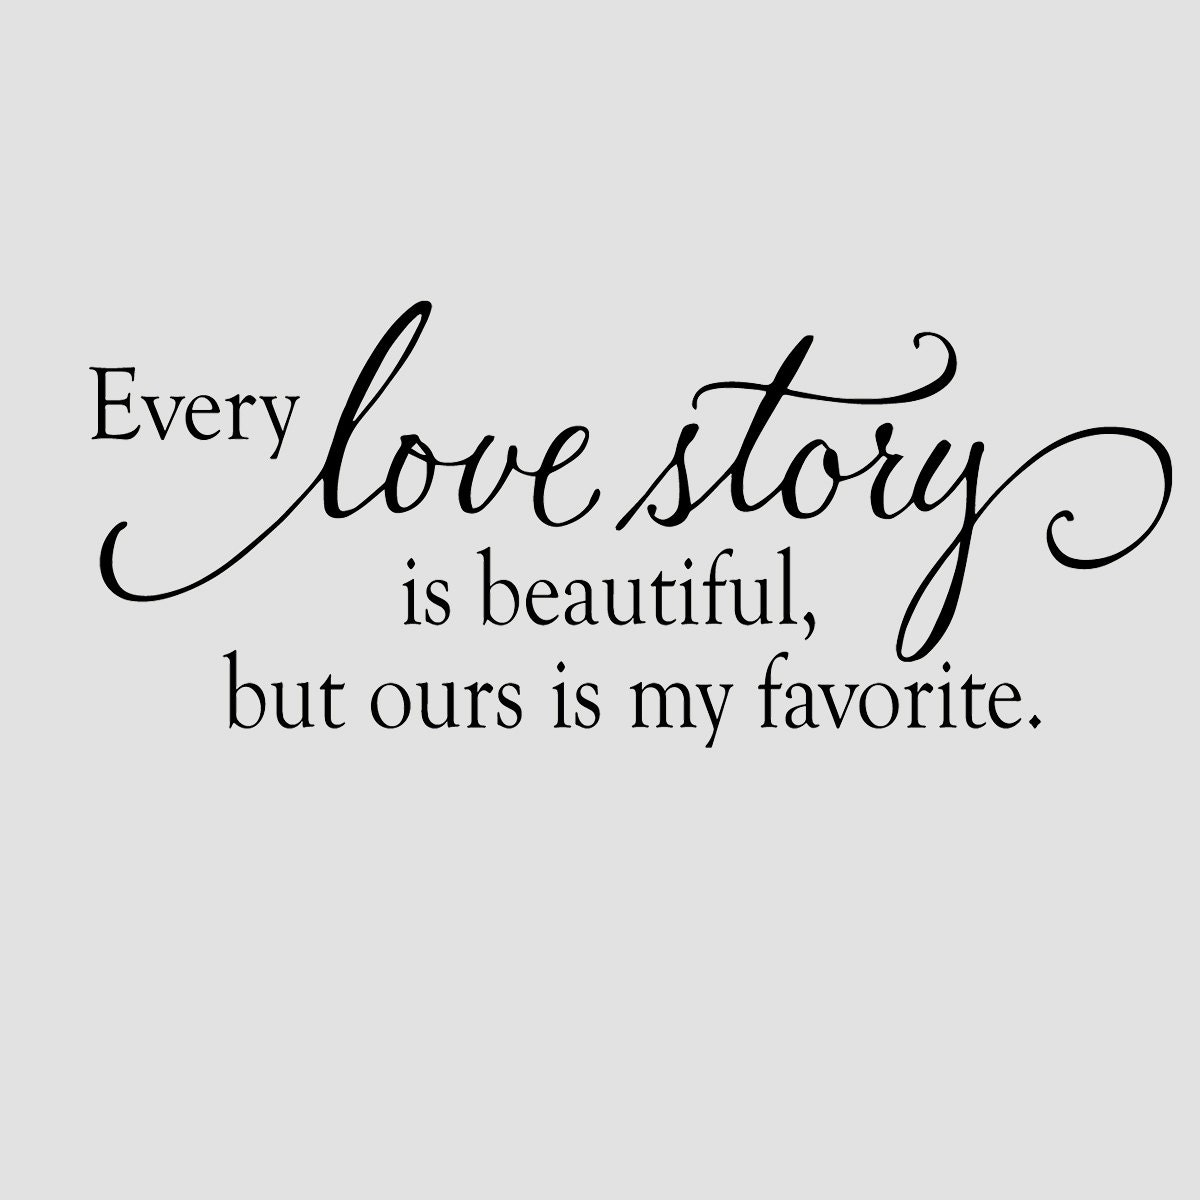 Quotes About A Love Story : Every love story is beautiful but ours is by OldBarnRescueCompany